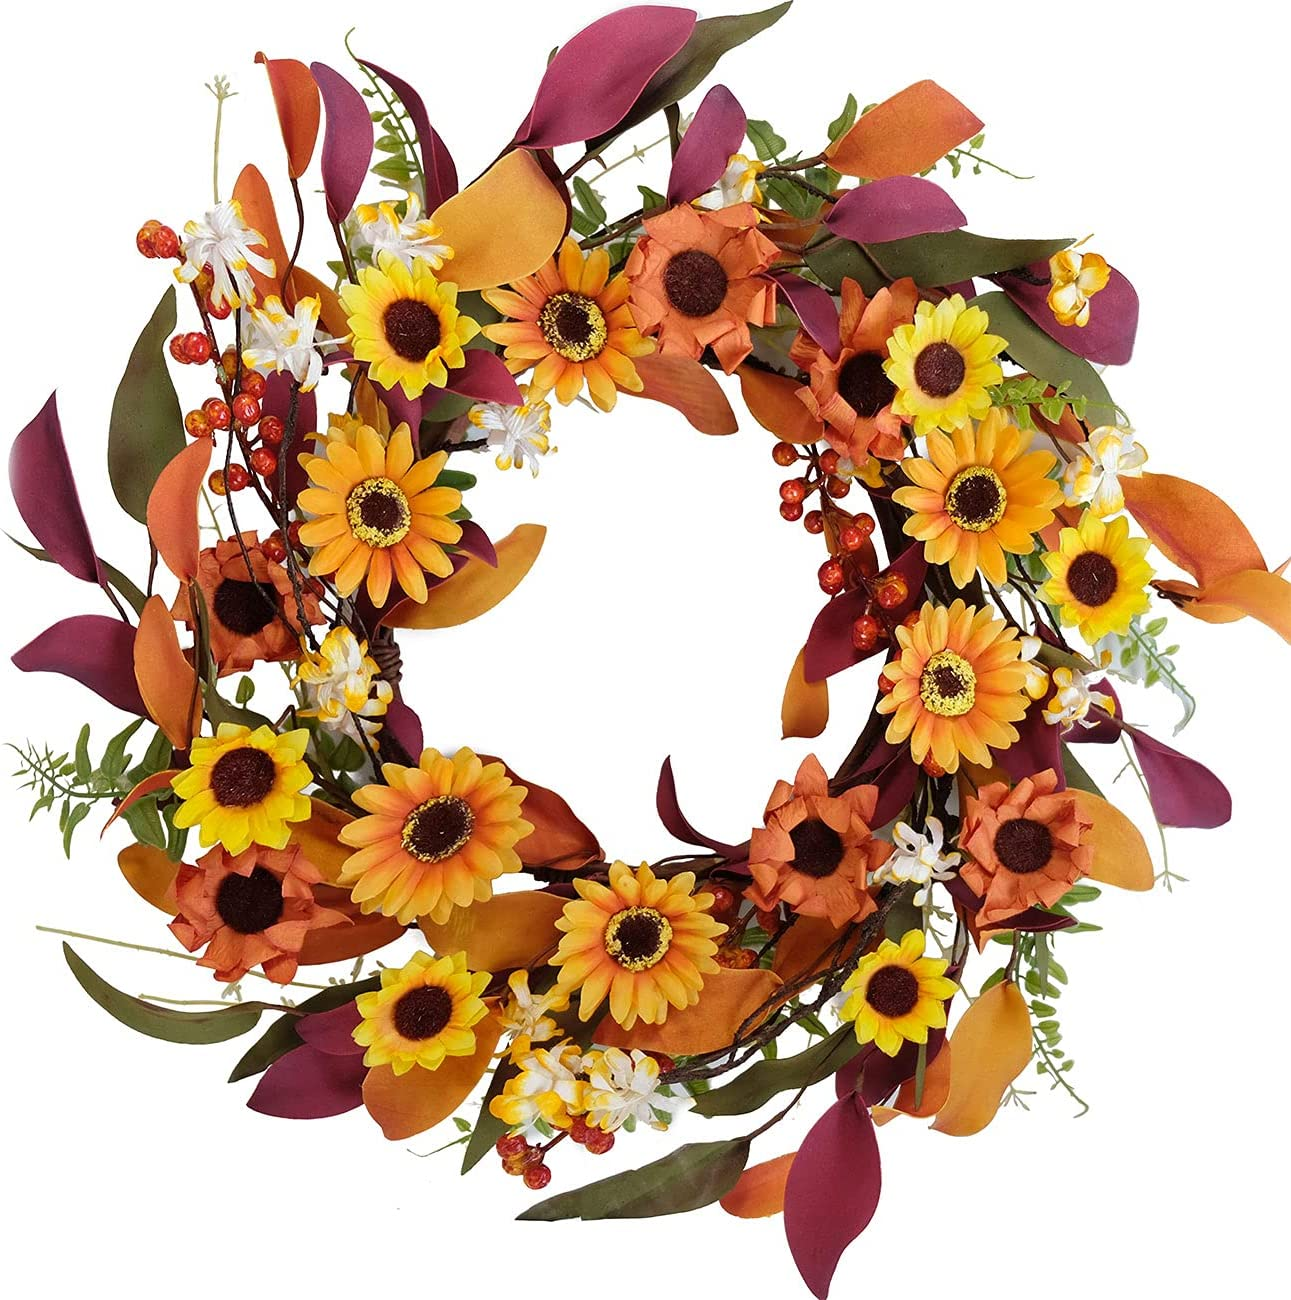 Artificial Fall Wreath Silk Sunflower Paper Flower Wreath Green and Colorful Leaves for Front Door Spring &Autumn Wreaths Farmhouse Home Office Wedding Party Wall Decor (14 in Wreath)